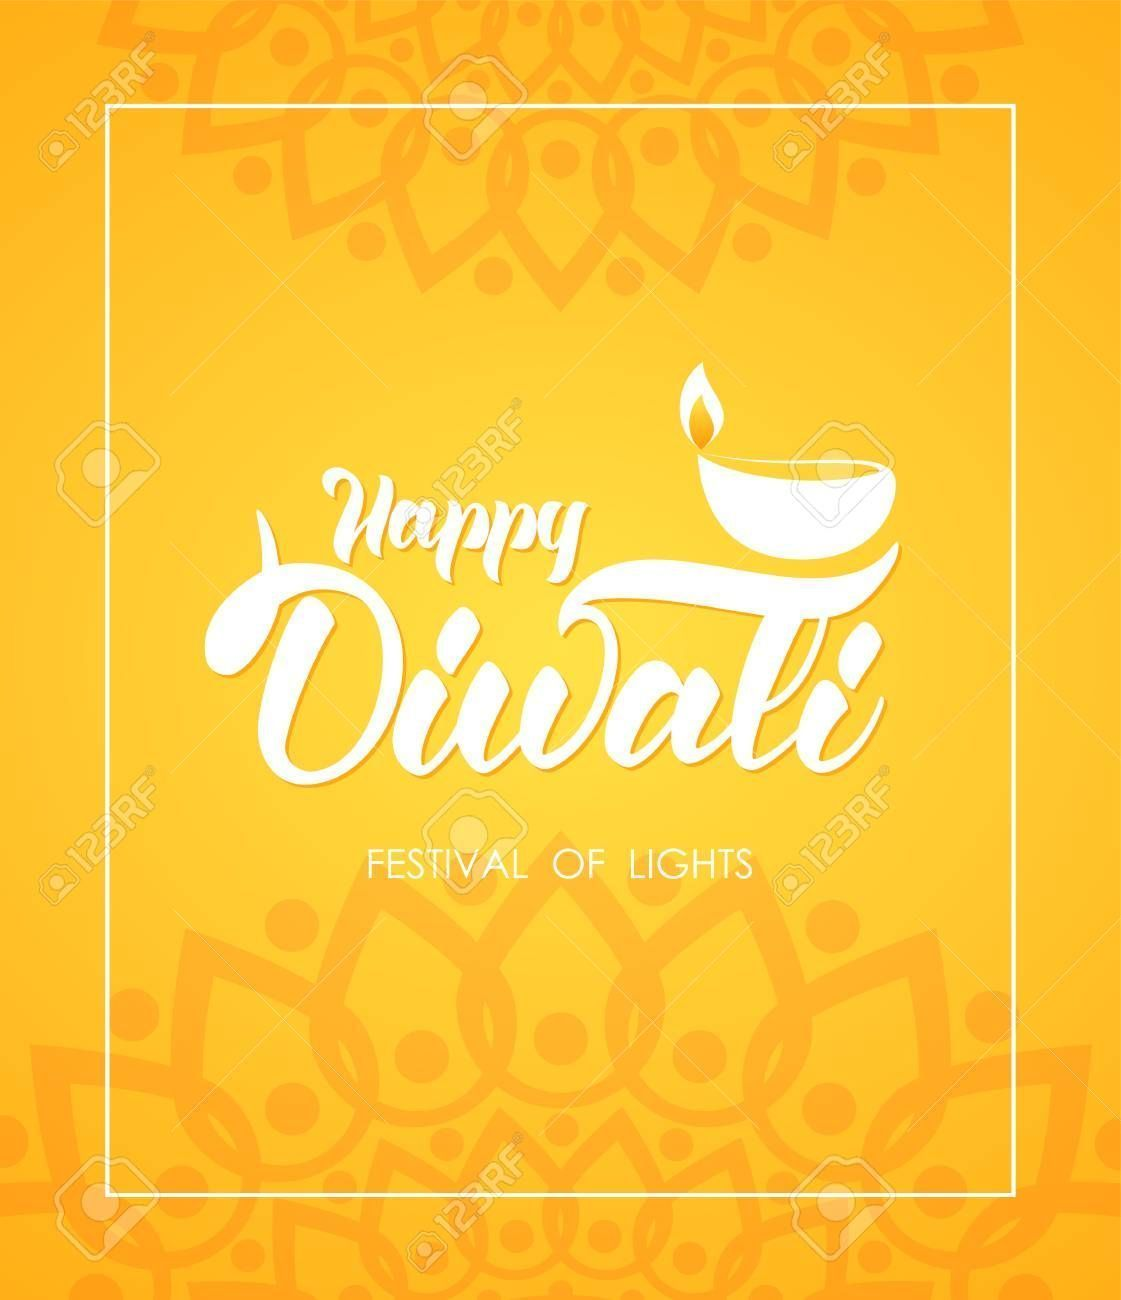 Happy Diwali. Greeting card wit hand lettering, Indian ornament and lamp with flame , #affiliate, #card, #wit, #Greeting, #Happy, #Diwali #happydiwaligreetings Happy Diwali. Greeting card wit hand lettering, Indian ornament and lamp with flame , #affiliate, #card, #wit, #Greeting, #Happy, #Diwali #happydiwaligreetings Happy Diwali. Greeting card wit hand lettering, Indian ornament and lamp with flame , #affiliate, #card, #wit, #Greeting, #Happy, #Diwali #happydiwaligreetings Happy Diwali. Greeti #happydiwaligreetings